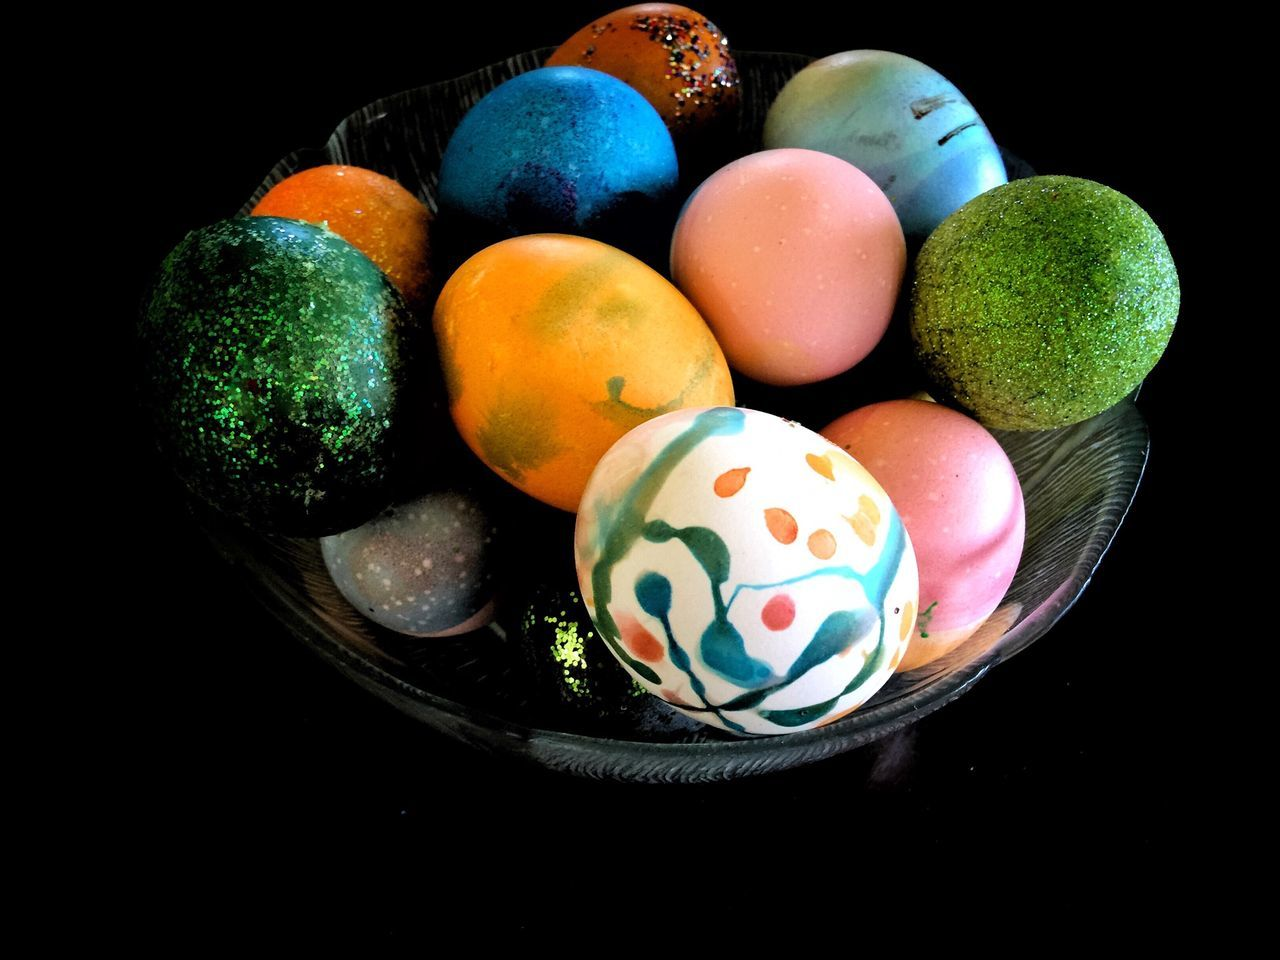 Easter Eggs Dyed Eggs Colored Eggs Easter Eggs... Eggs Colorful Food Holiday POV Holiday Easter Egg Hunt